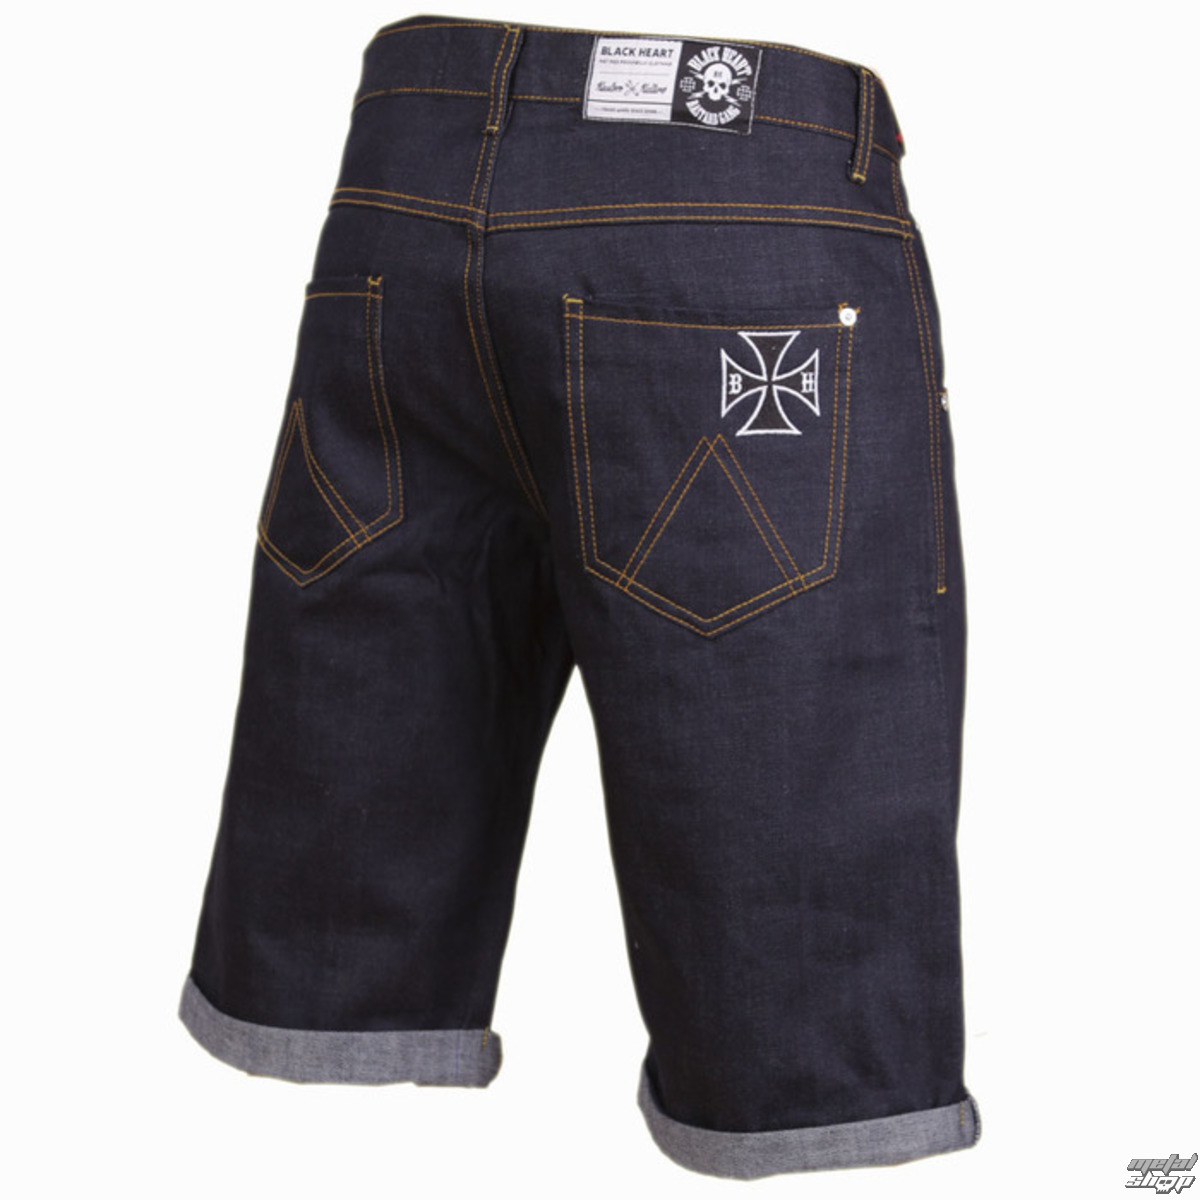 7314b4034b BLACK HEART férfi rövidnadrág - Cross - Denim - BH161 - Metalshop.hu